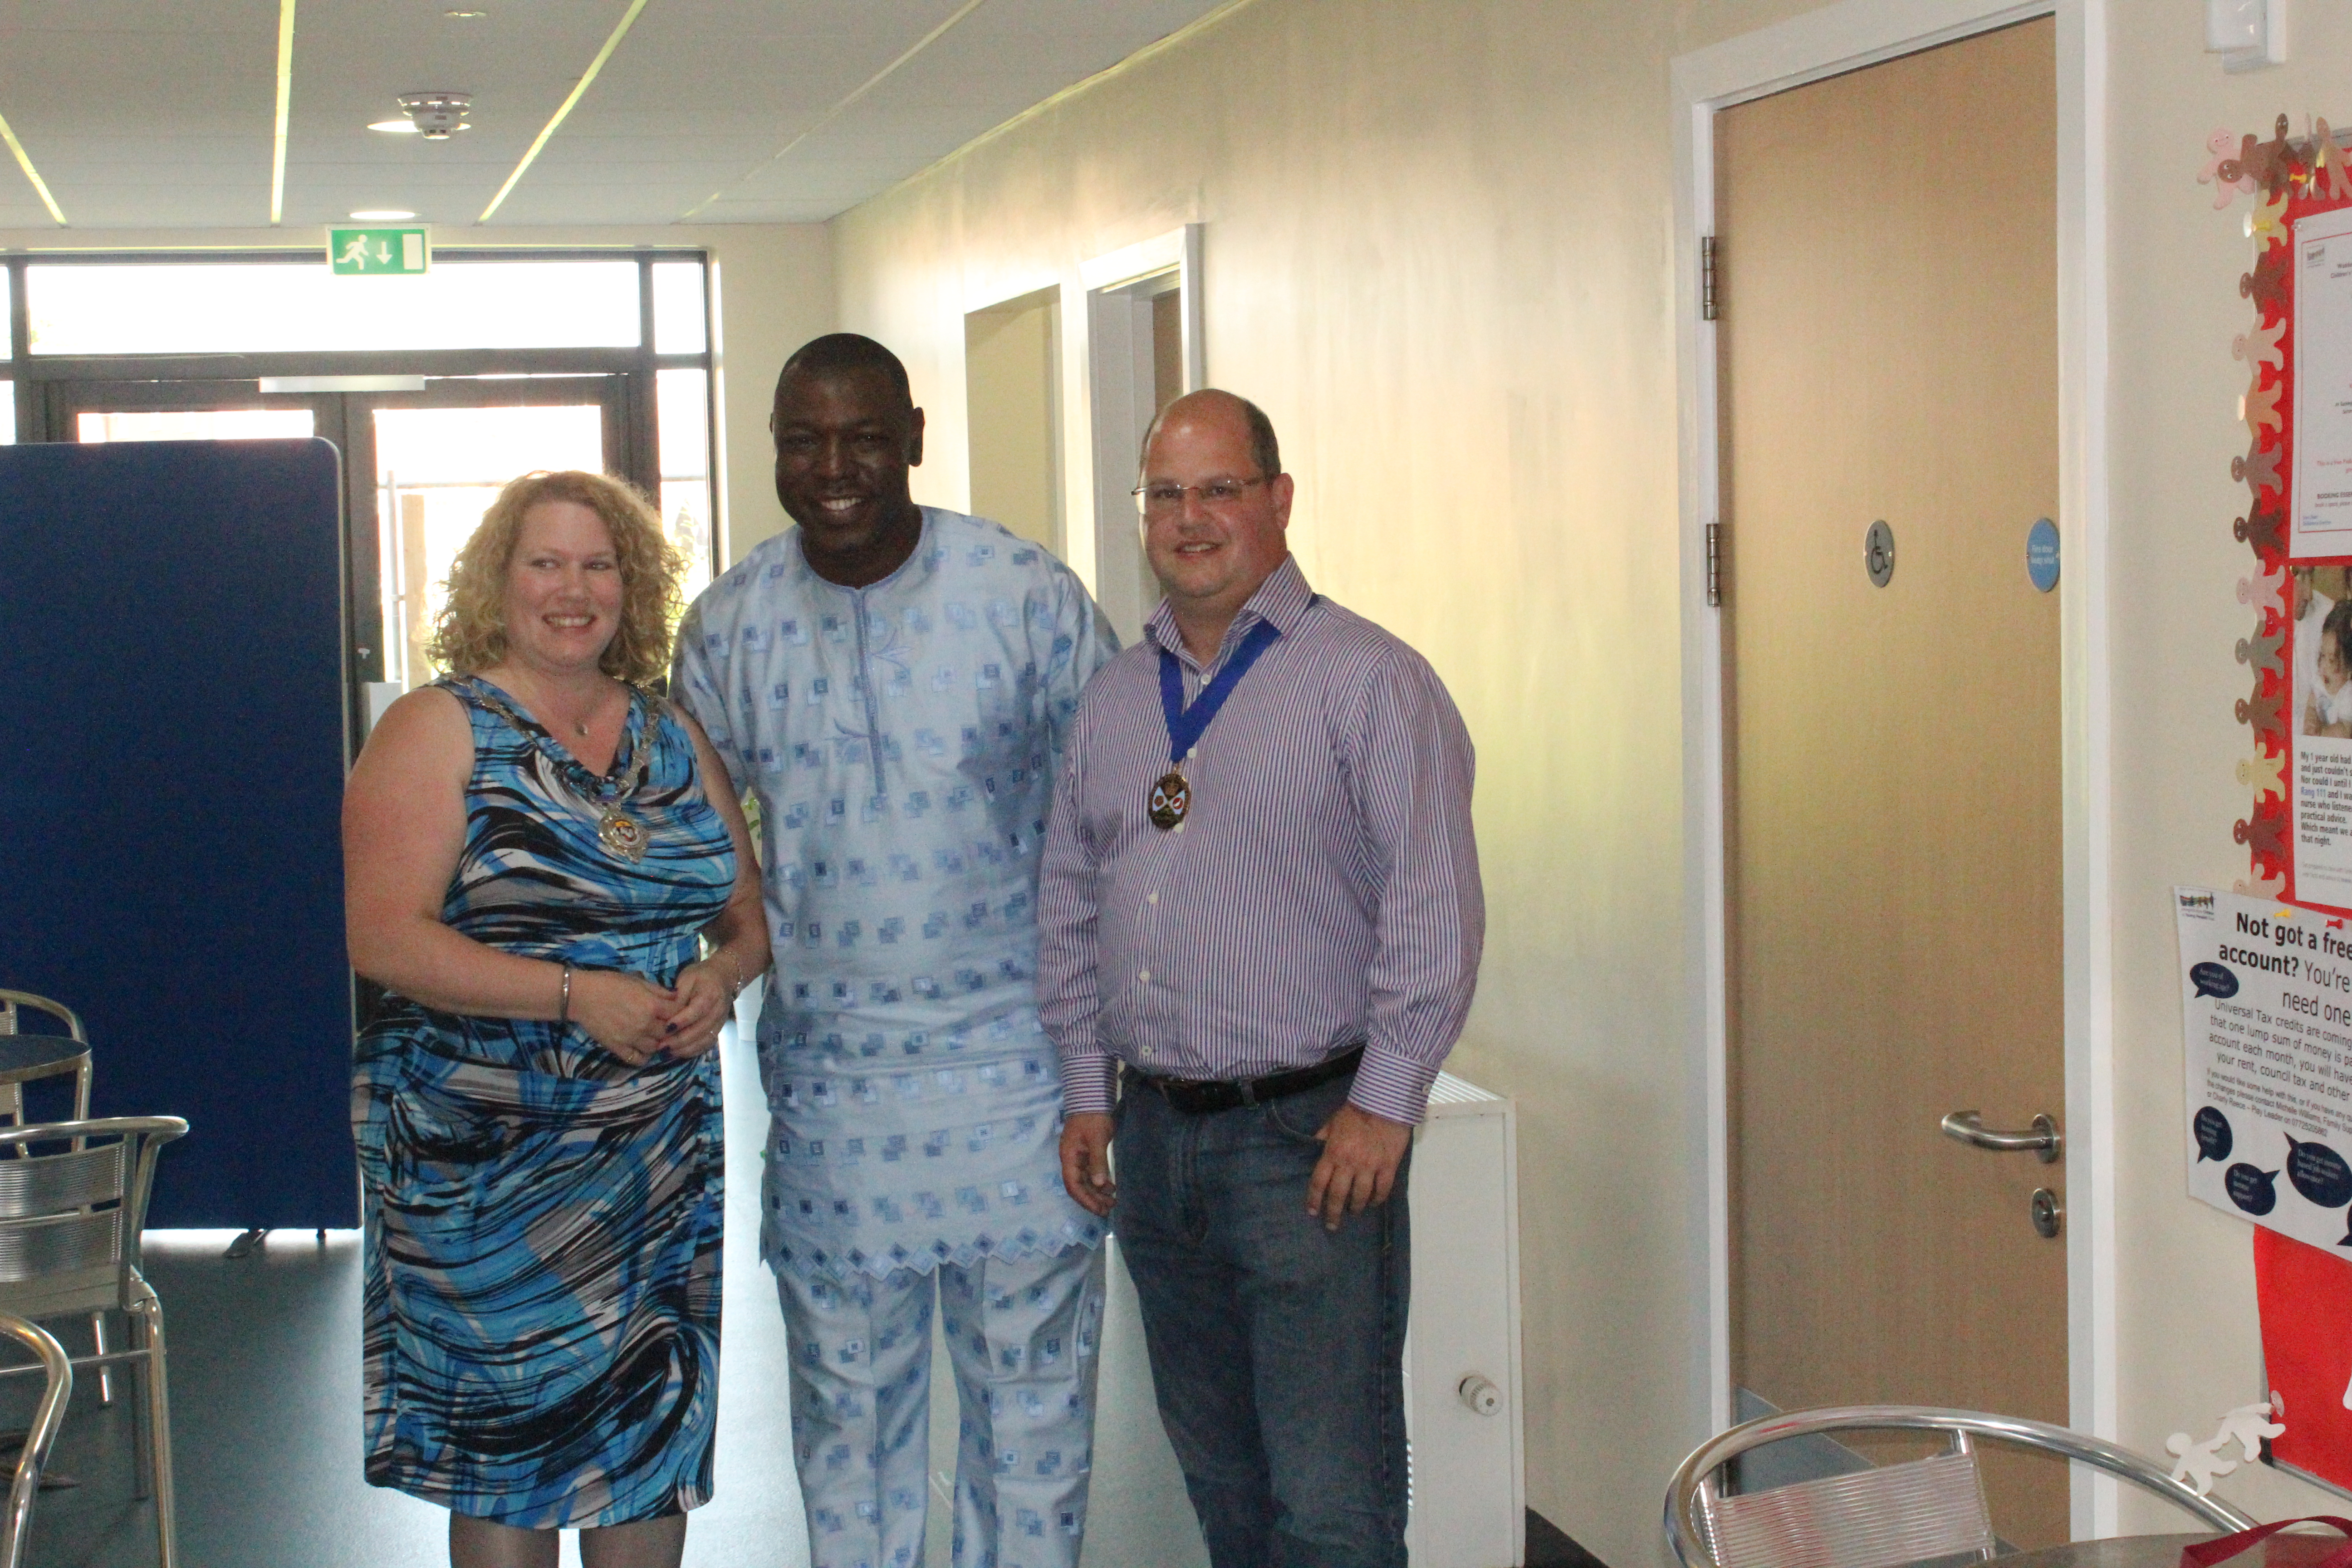 Cllr Allison, NCAA President (Dayo) and Cllr Anders